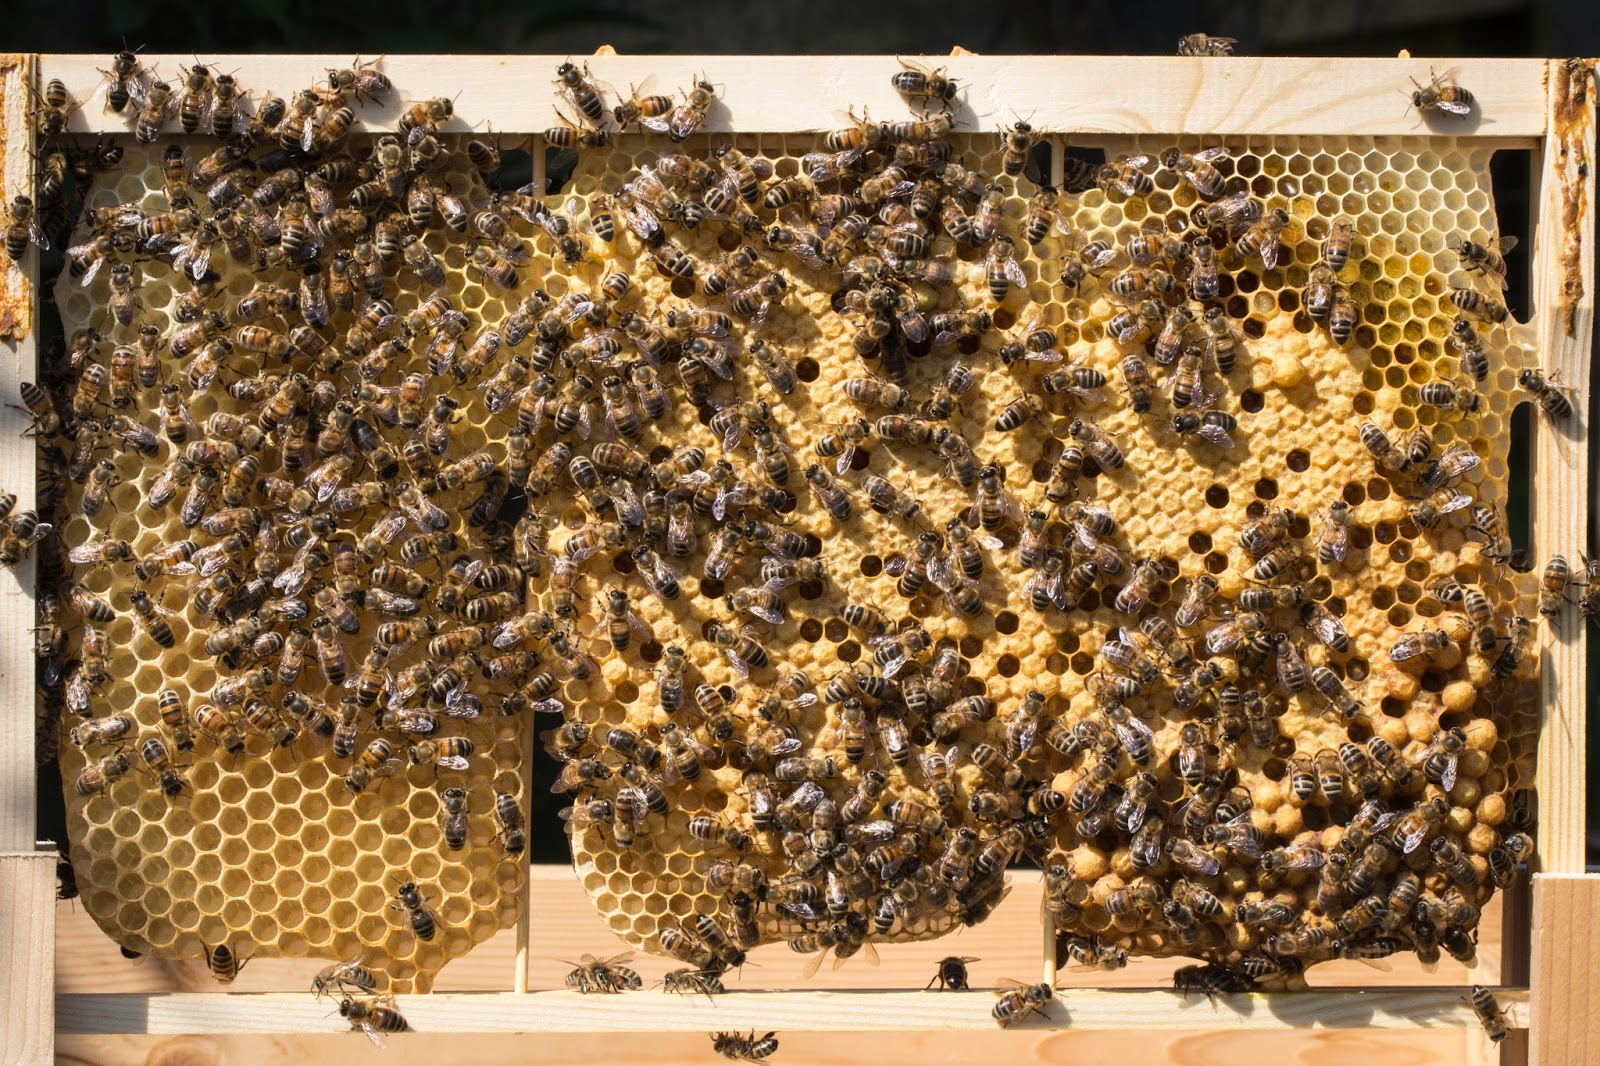 Trogtrogbee Foundationless Frames Wiring Board Bee A Couple Of Important Points From David Evans Advice The Hive Must Be Perfectly Horizontal If Are Not Vertical Bees Will Build Comb